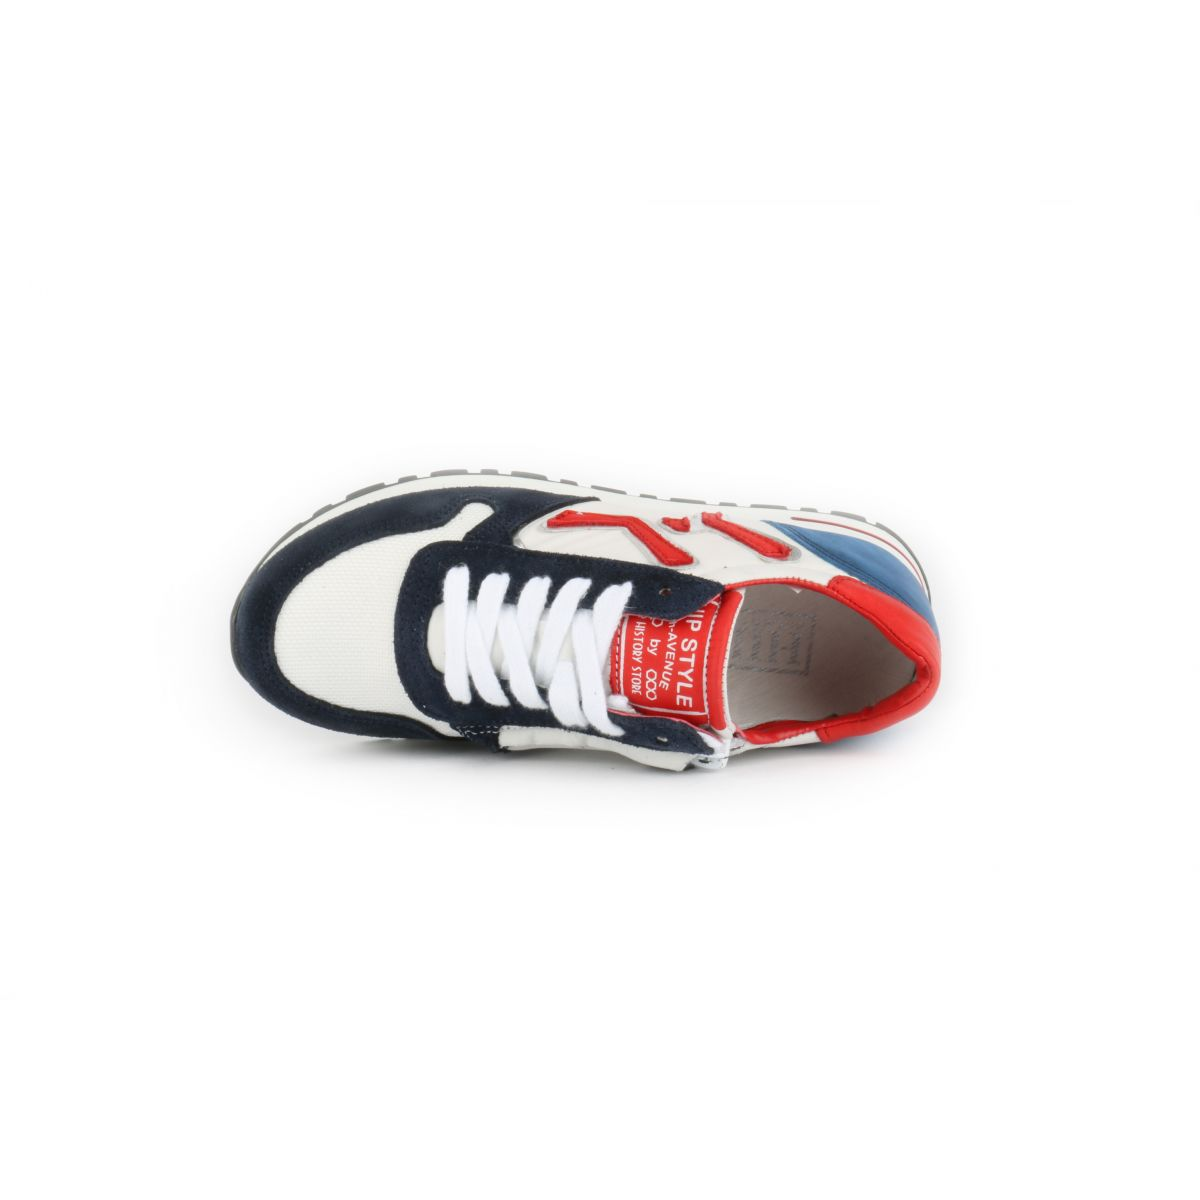 HIP H1841 Sneakers Rood/Wit/Blauw